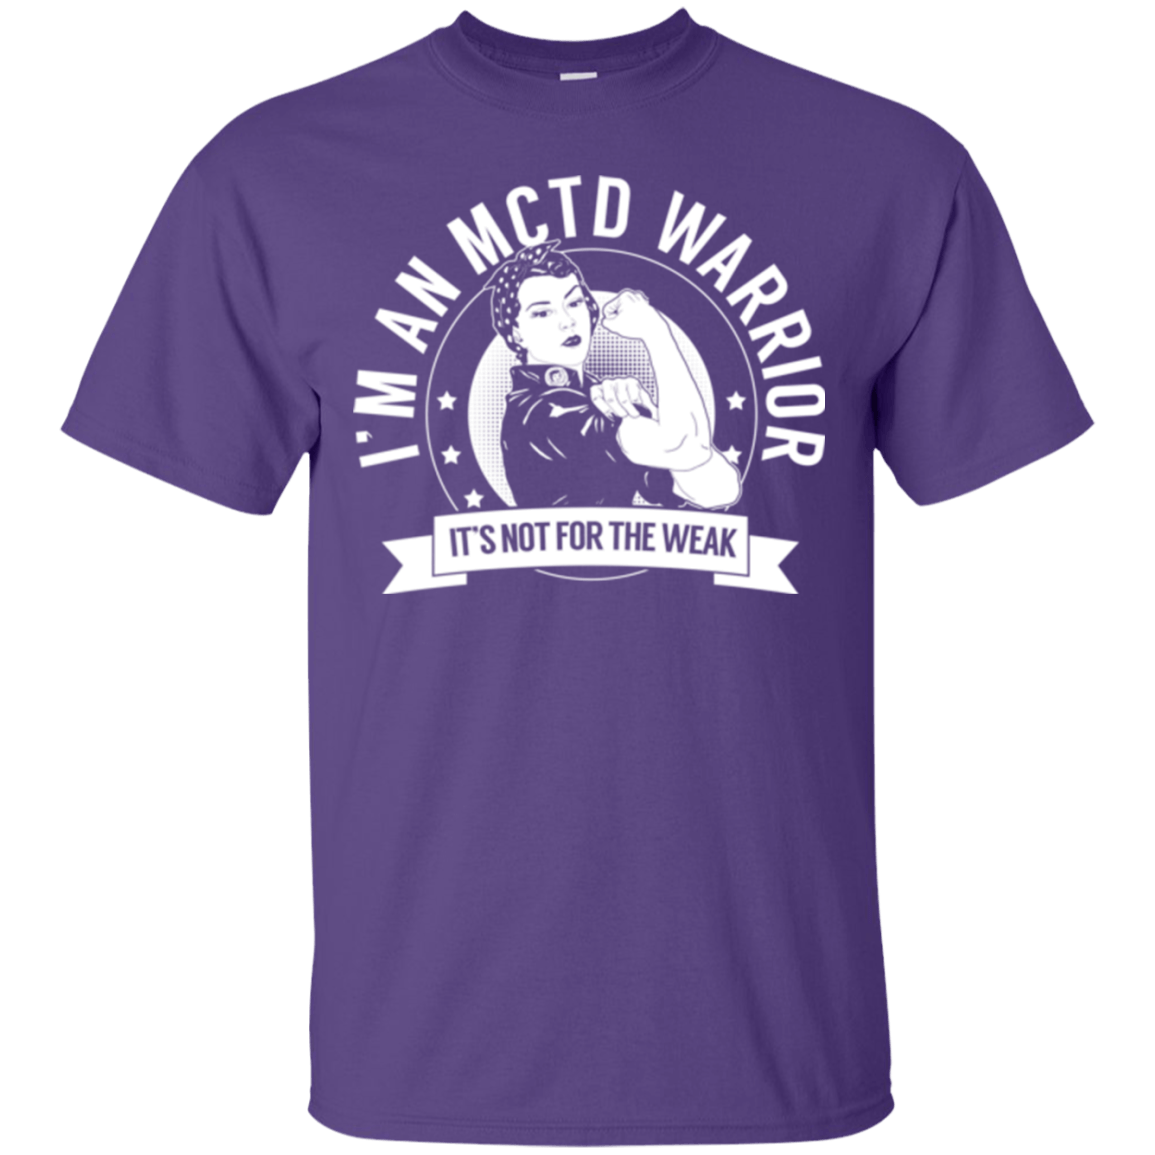 T-Shirts - Mixed Connective Tissue Disease - MCTD Warrior Not For The Weak Cotton T-Shirt